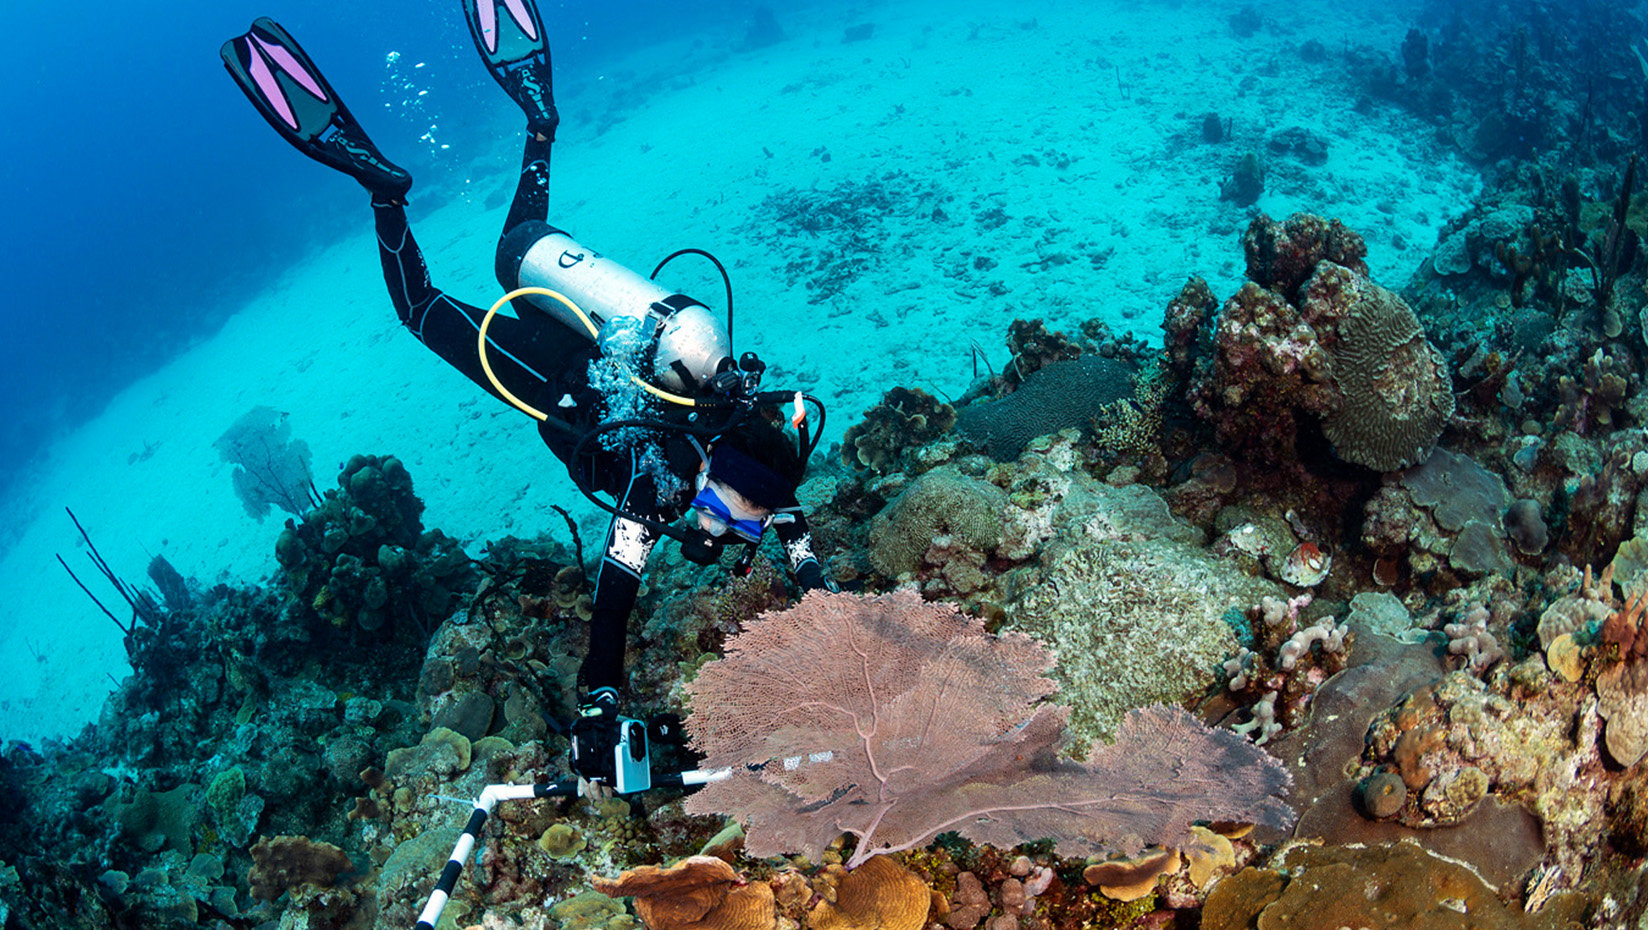 Diver surveys coral reef in the tropical waters off the Dominican Republic.